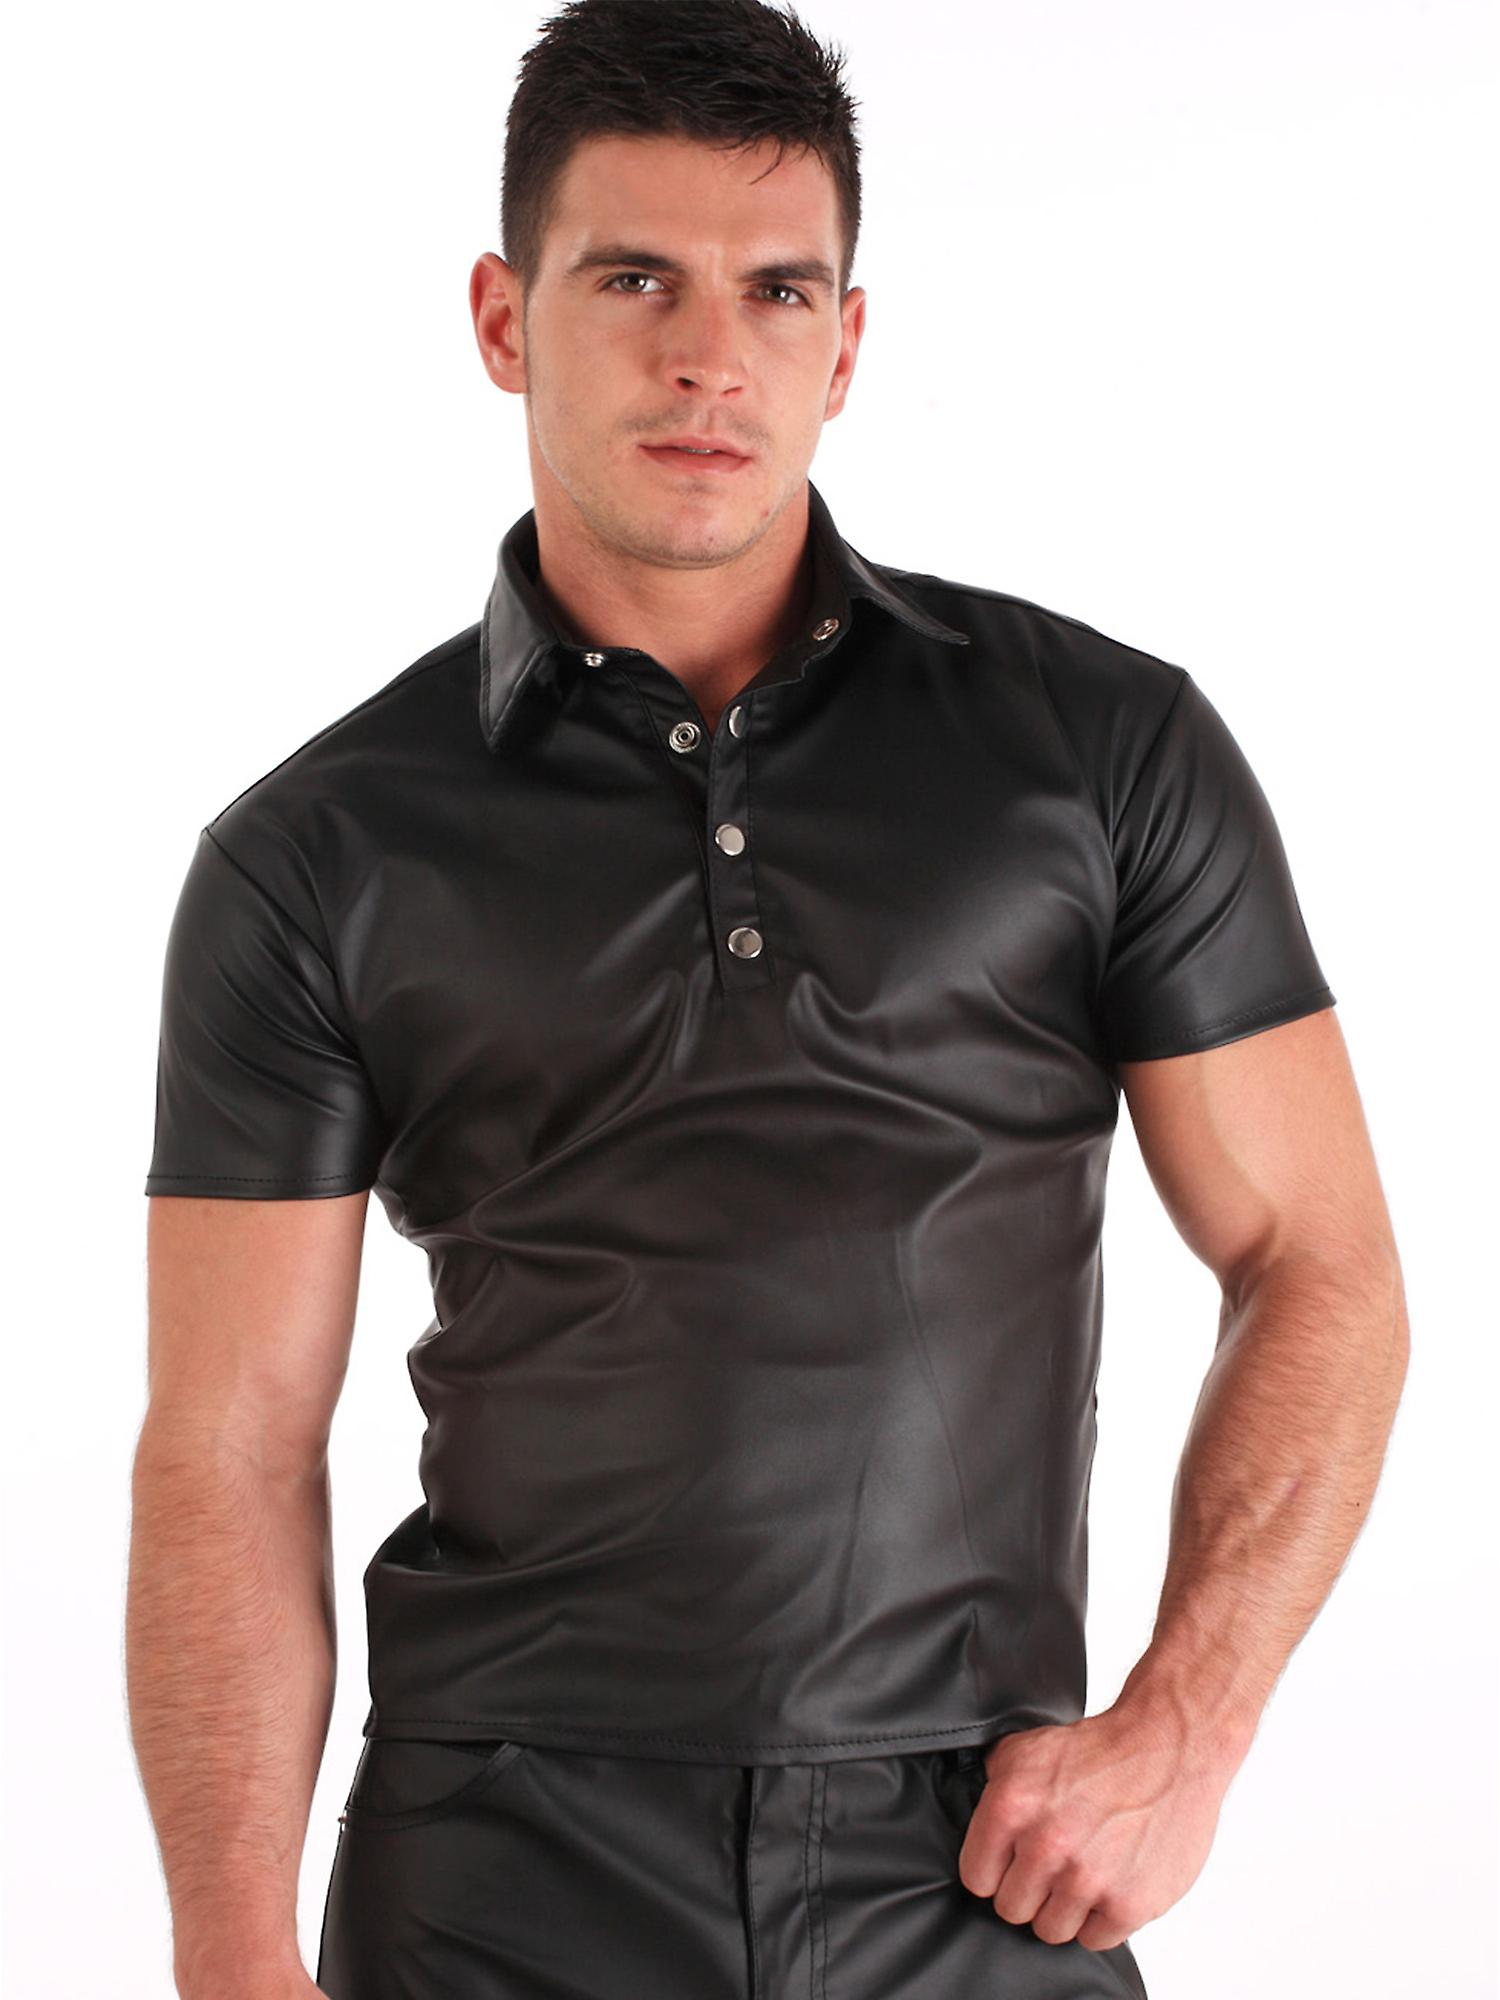 Honour Men's Tight Polo Top Shirt in Black PVC Leather Look Shortsleeves